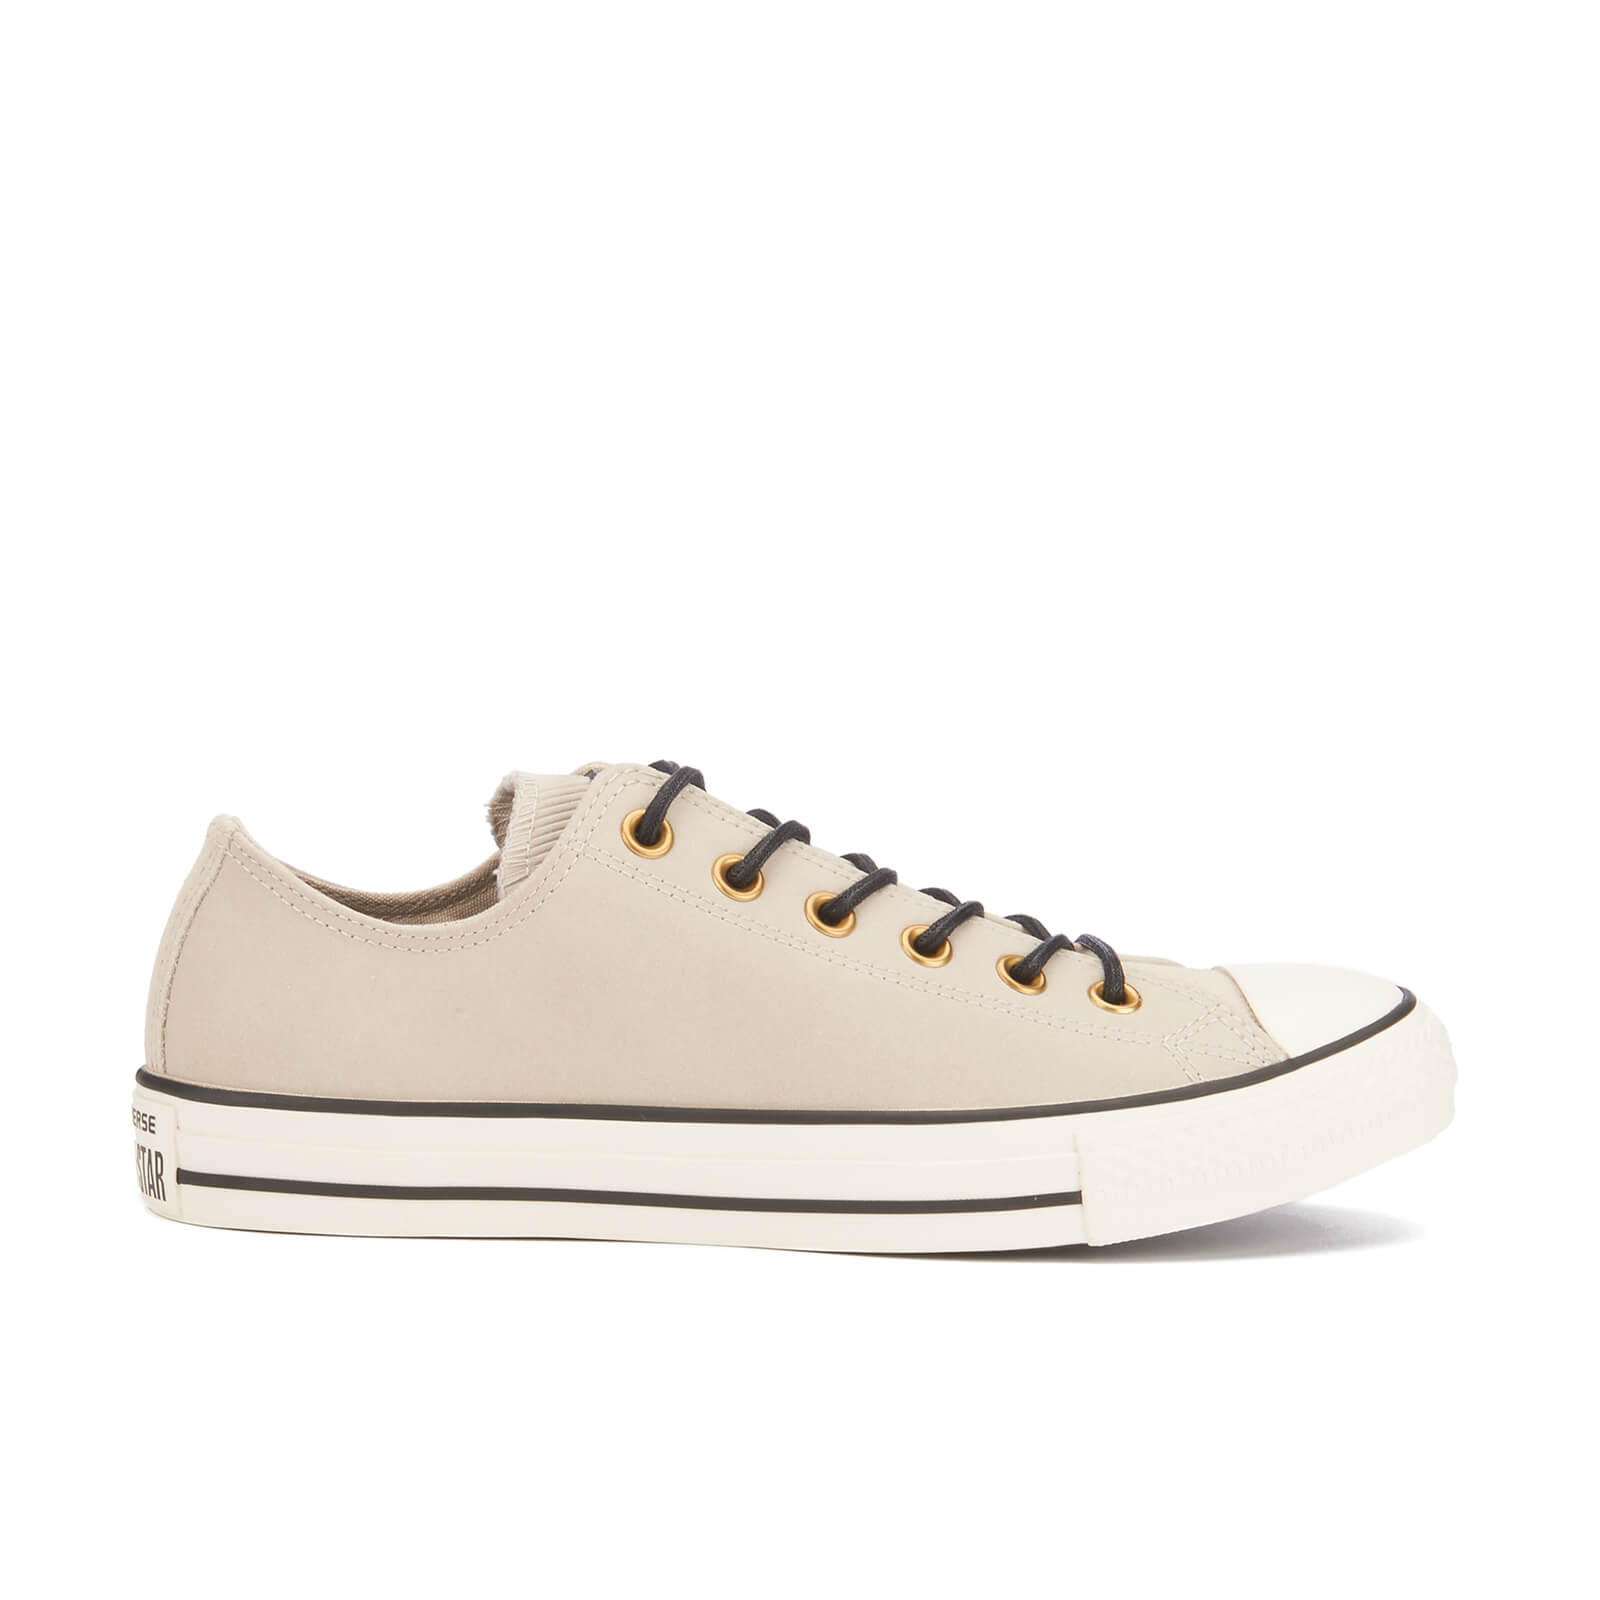 Converse Men's Chuck Taylor All Star LeatherCorduroy Ox Trainers Frayed BurlapEgretBlack